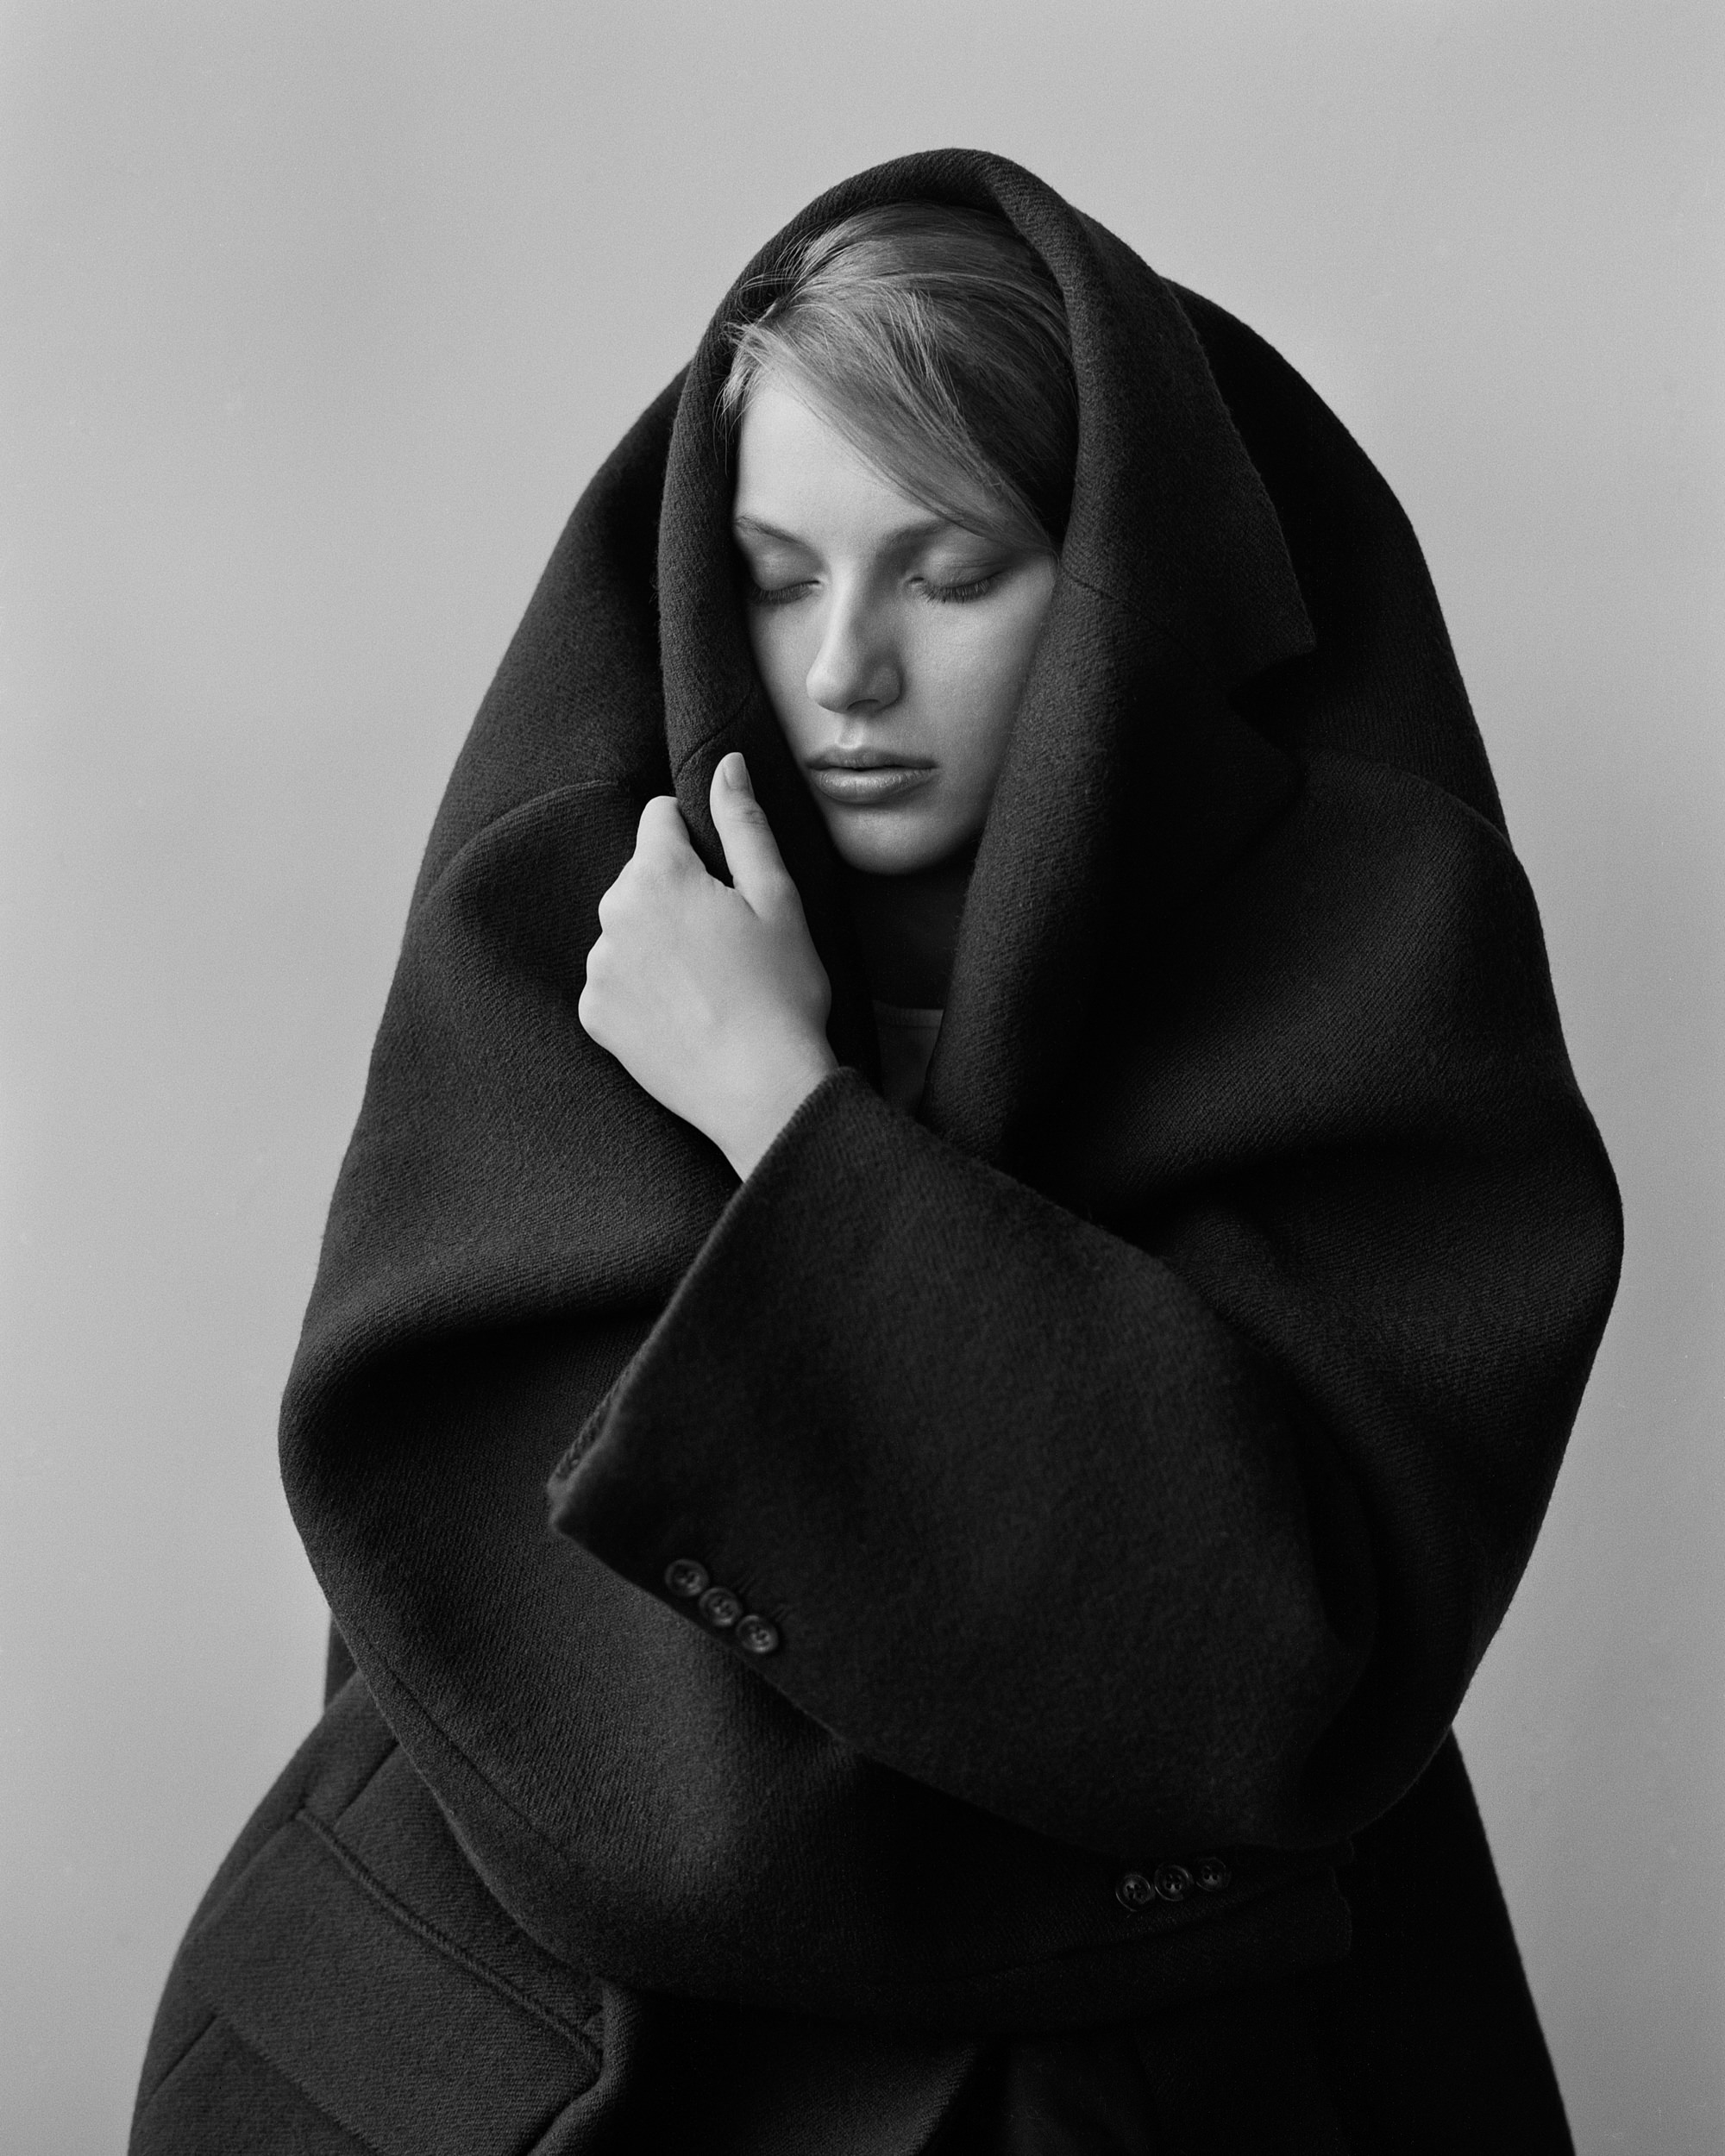 Editorial Fashion Photography by Martin D Barker